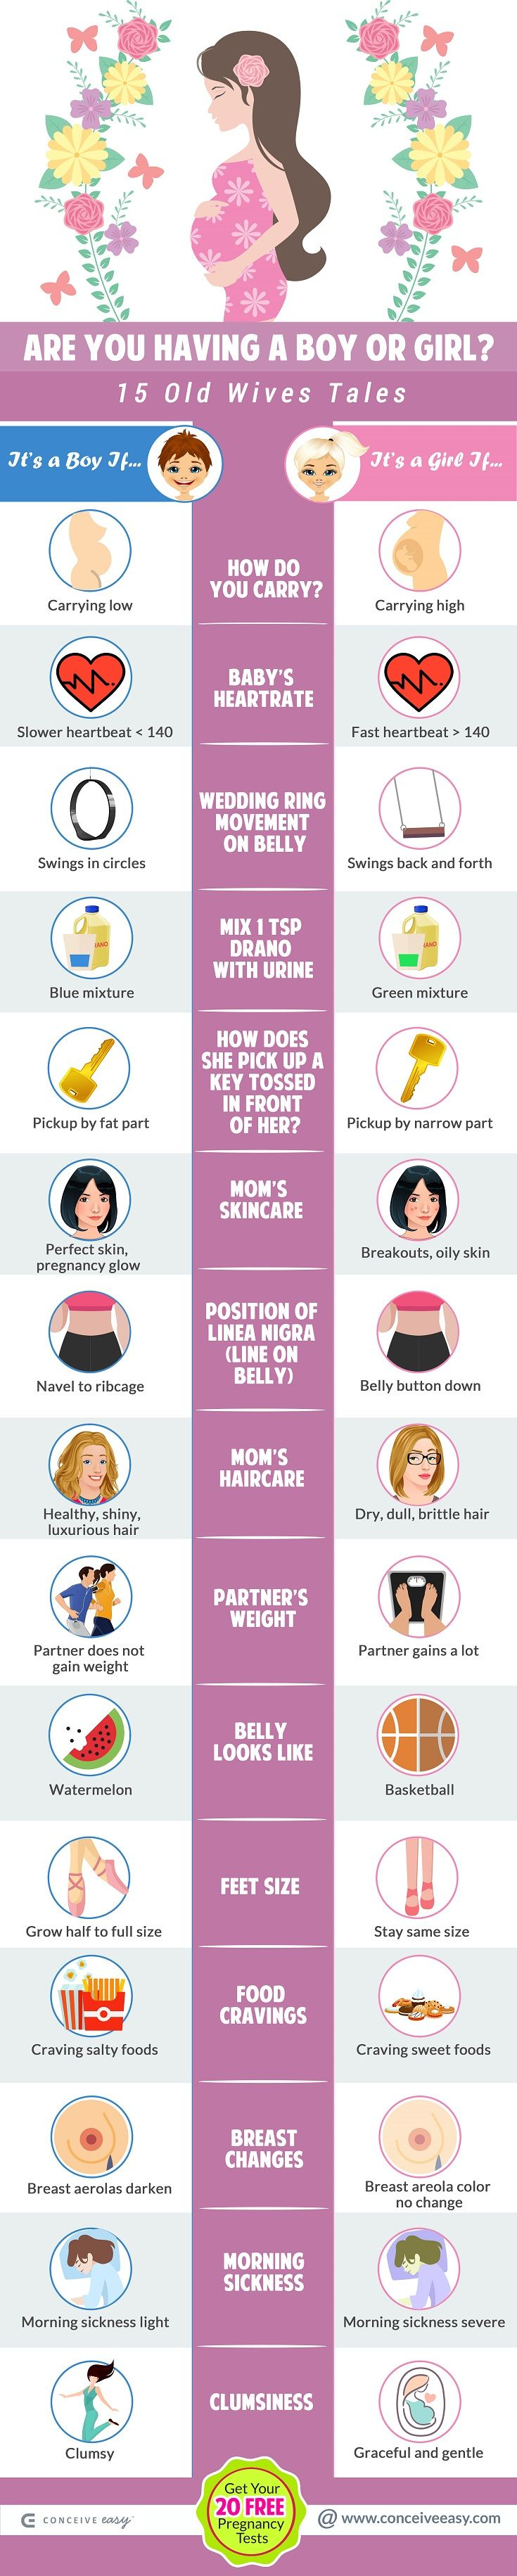 Boy or Girl? 15 Old Wives Tales to Predict Baby's Gender Infographic